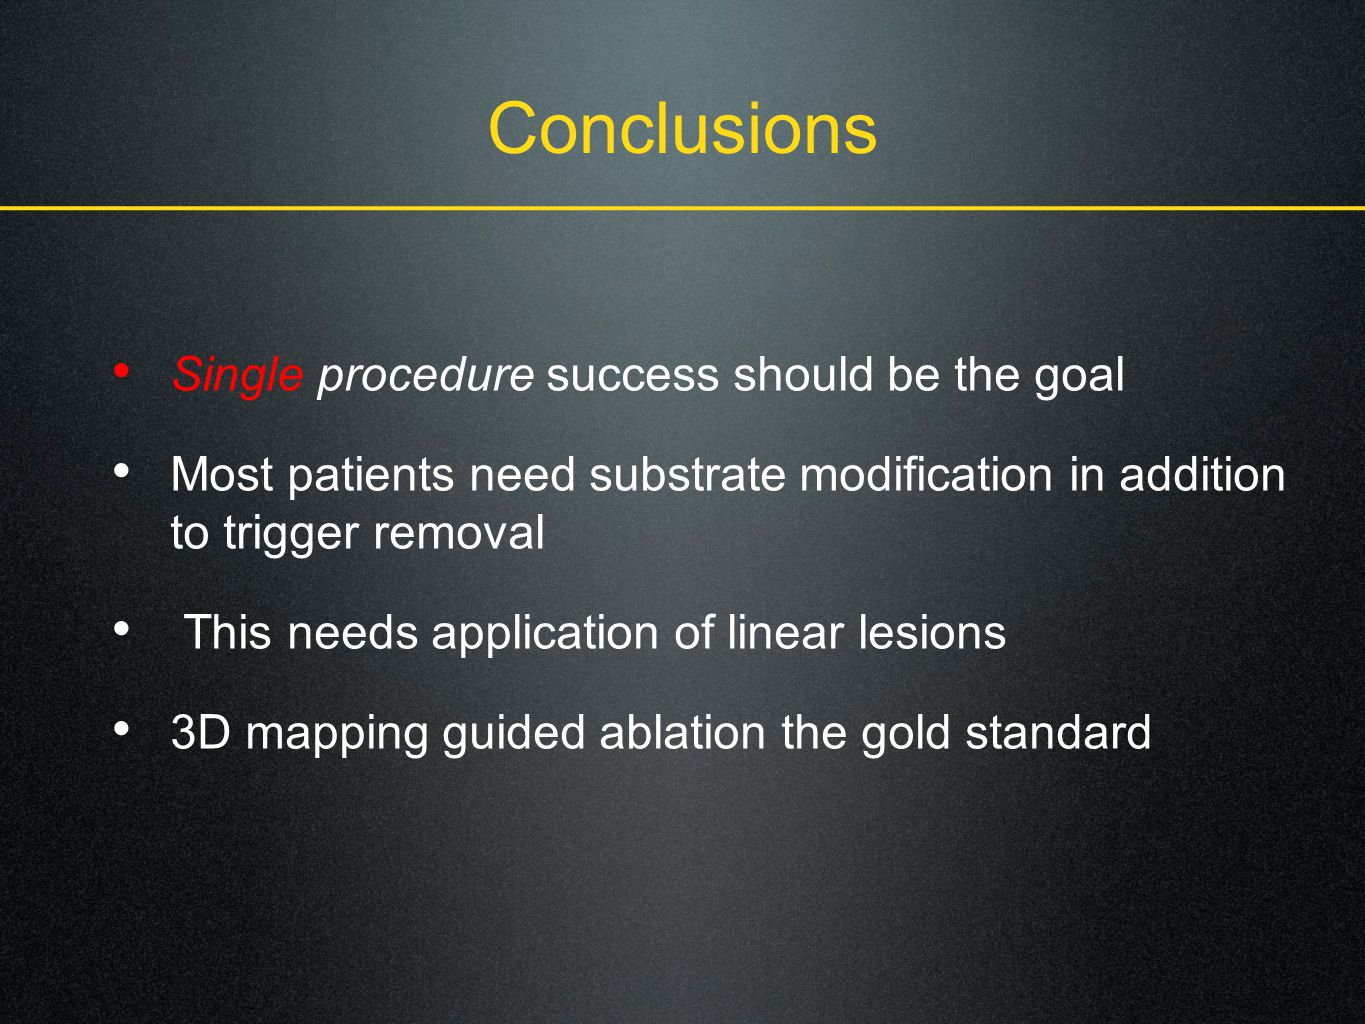 Conclusions Single procedure success should be the goal Most patients need substrate modification in addition to trigger removal This needs application of linear lesions 3D mapping guided ablation the gold standard